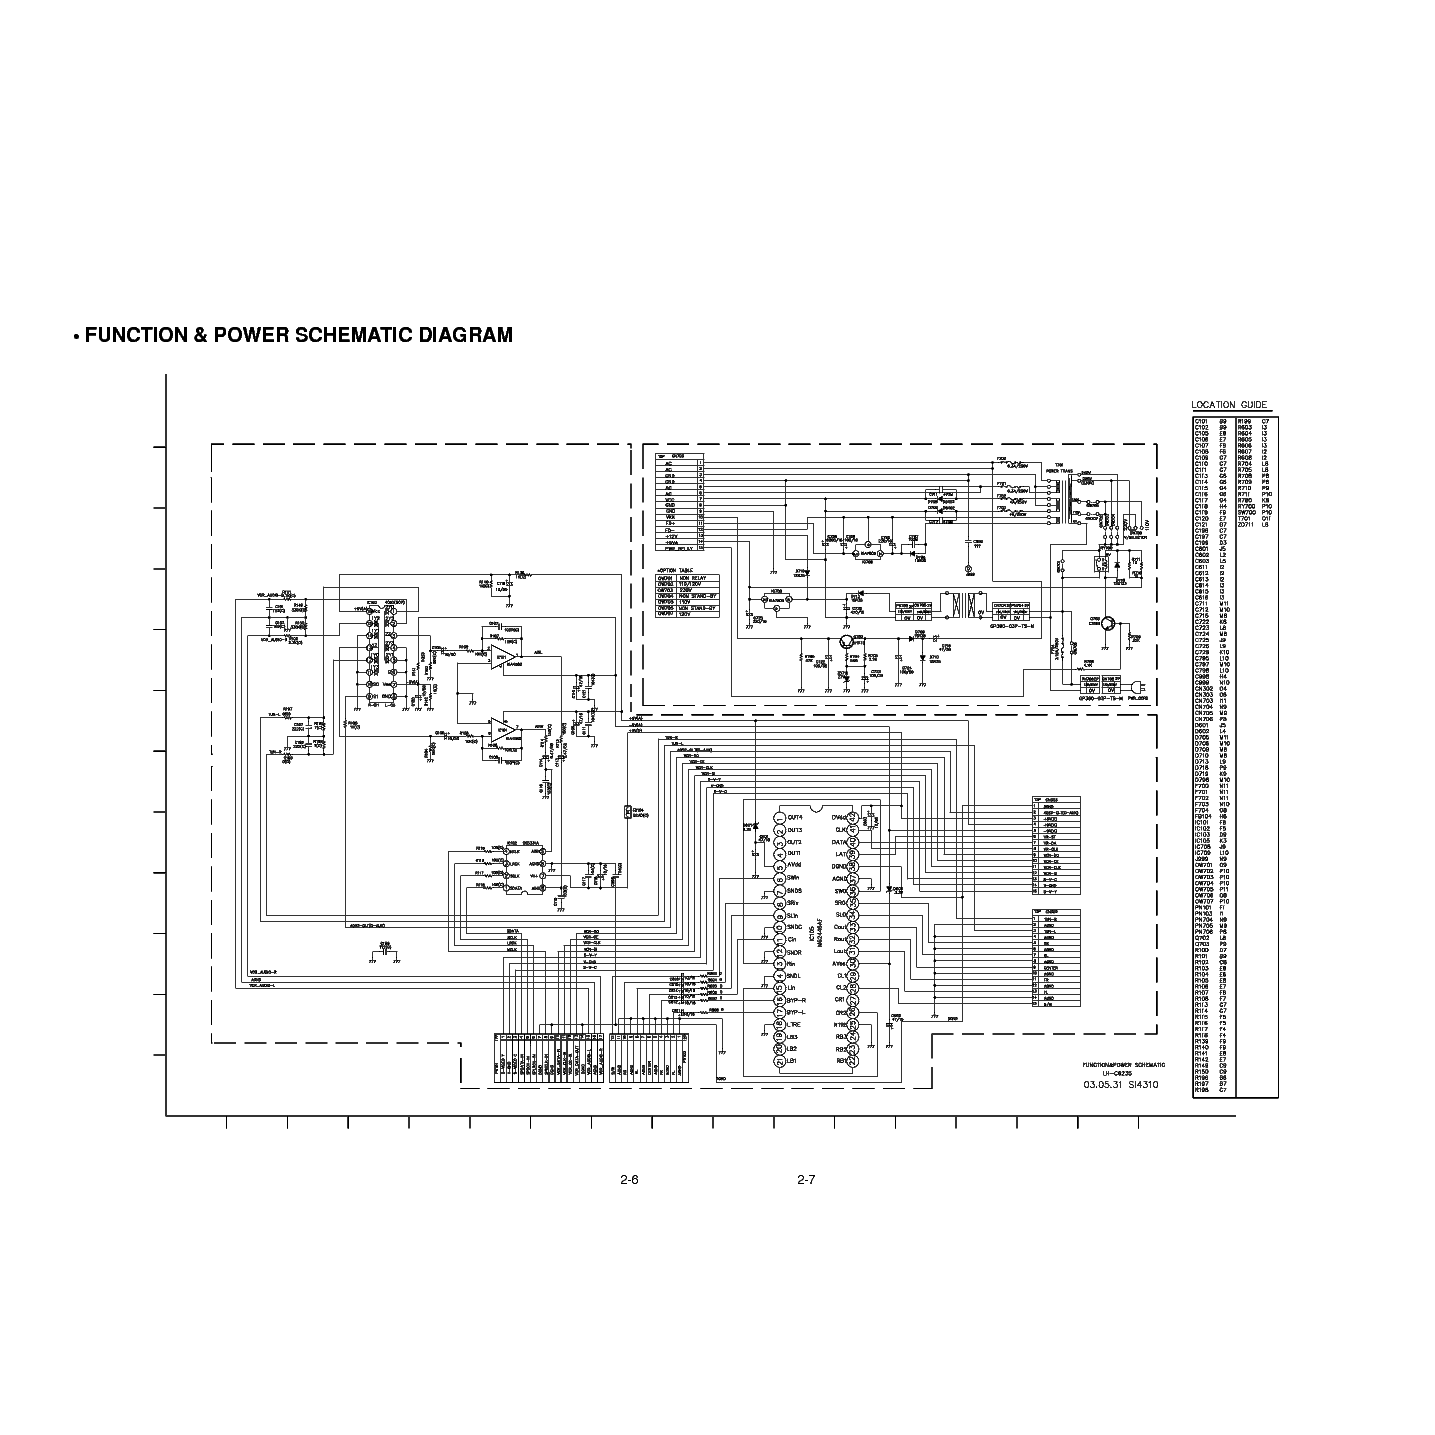 LG EAY39333001 PSPU-J704A POWER SUPPLY SCH Service Manual